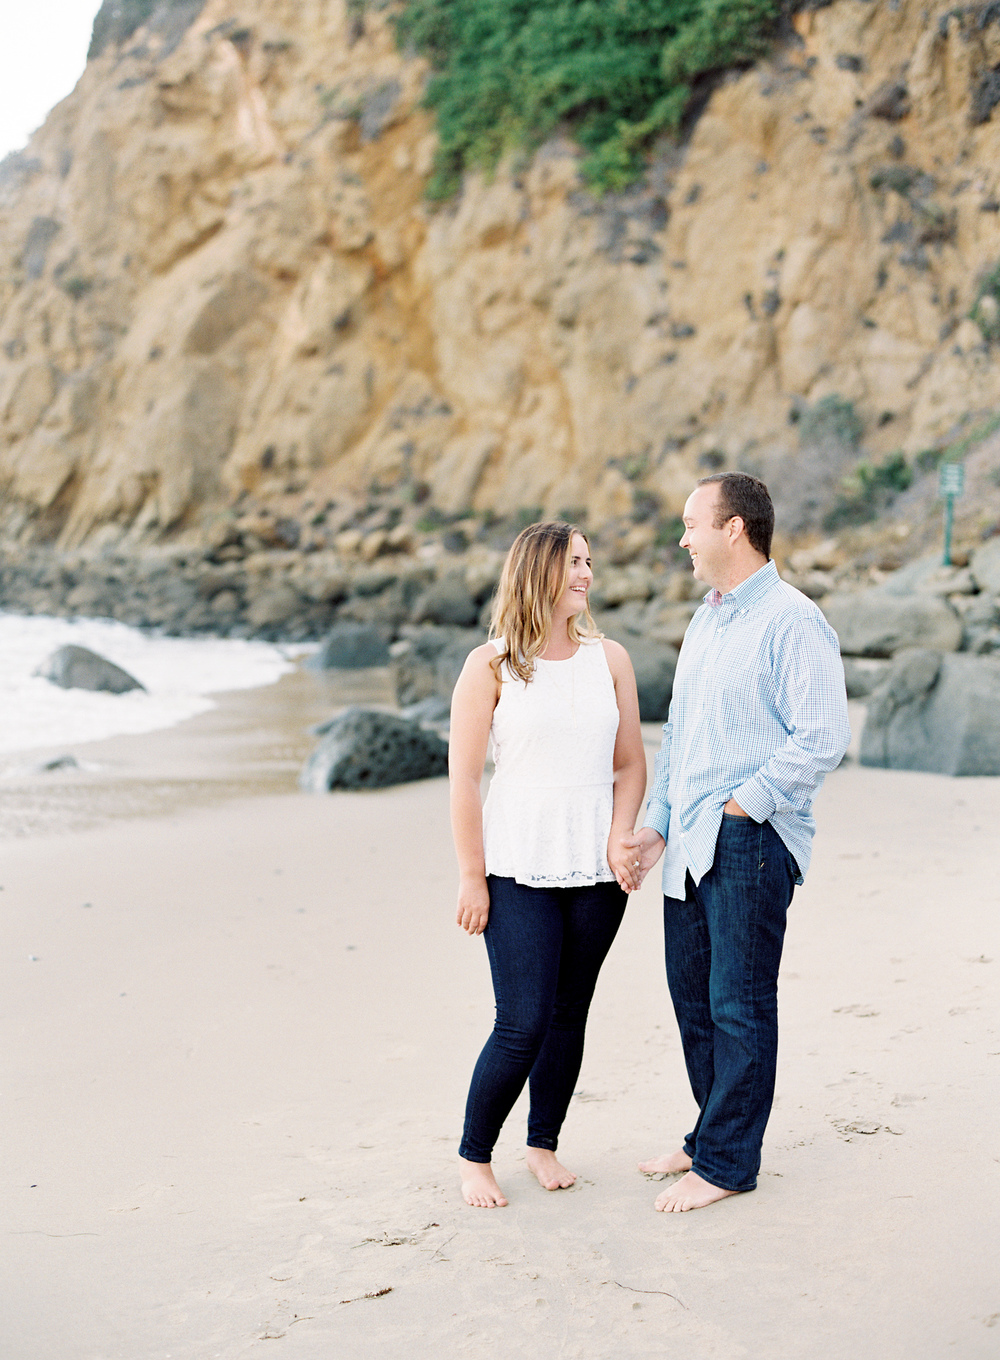 Laguna-Beach-Engagement-Film-Wedding-Orange-County-1.jpg